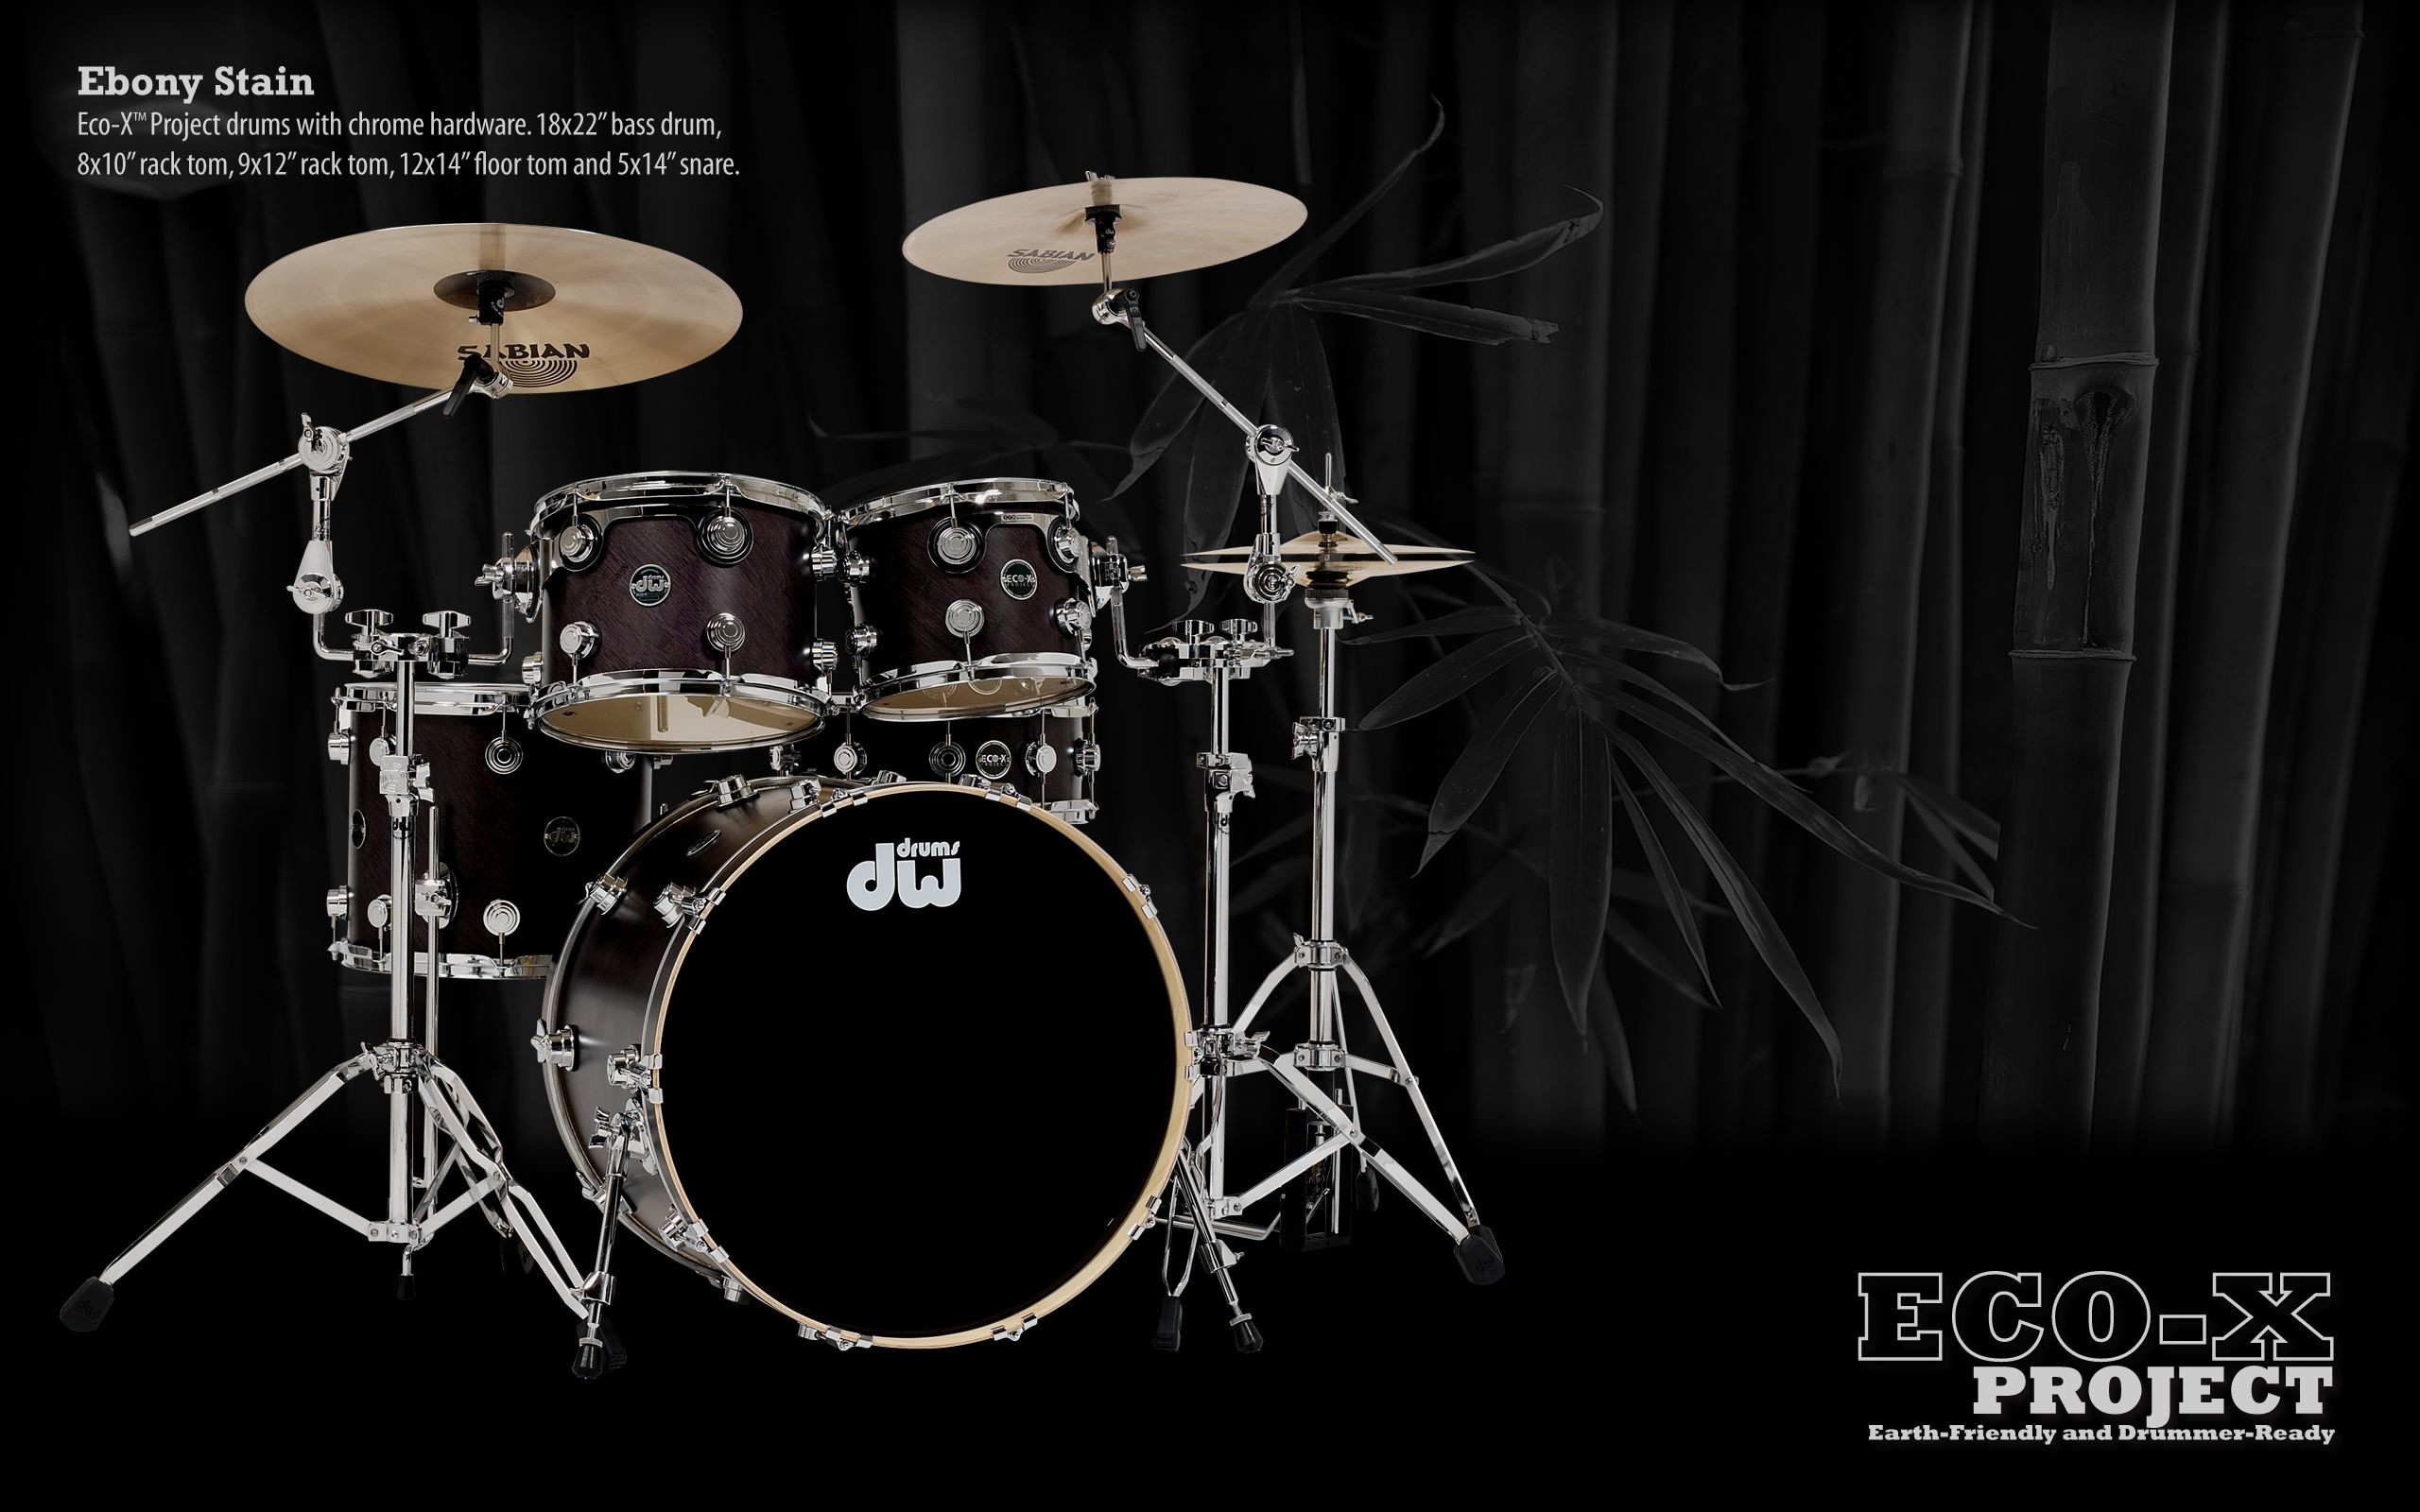 2560x1600 Drum Set Wallpaper - Wallpapers Browse